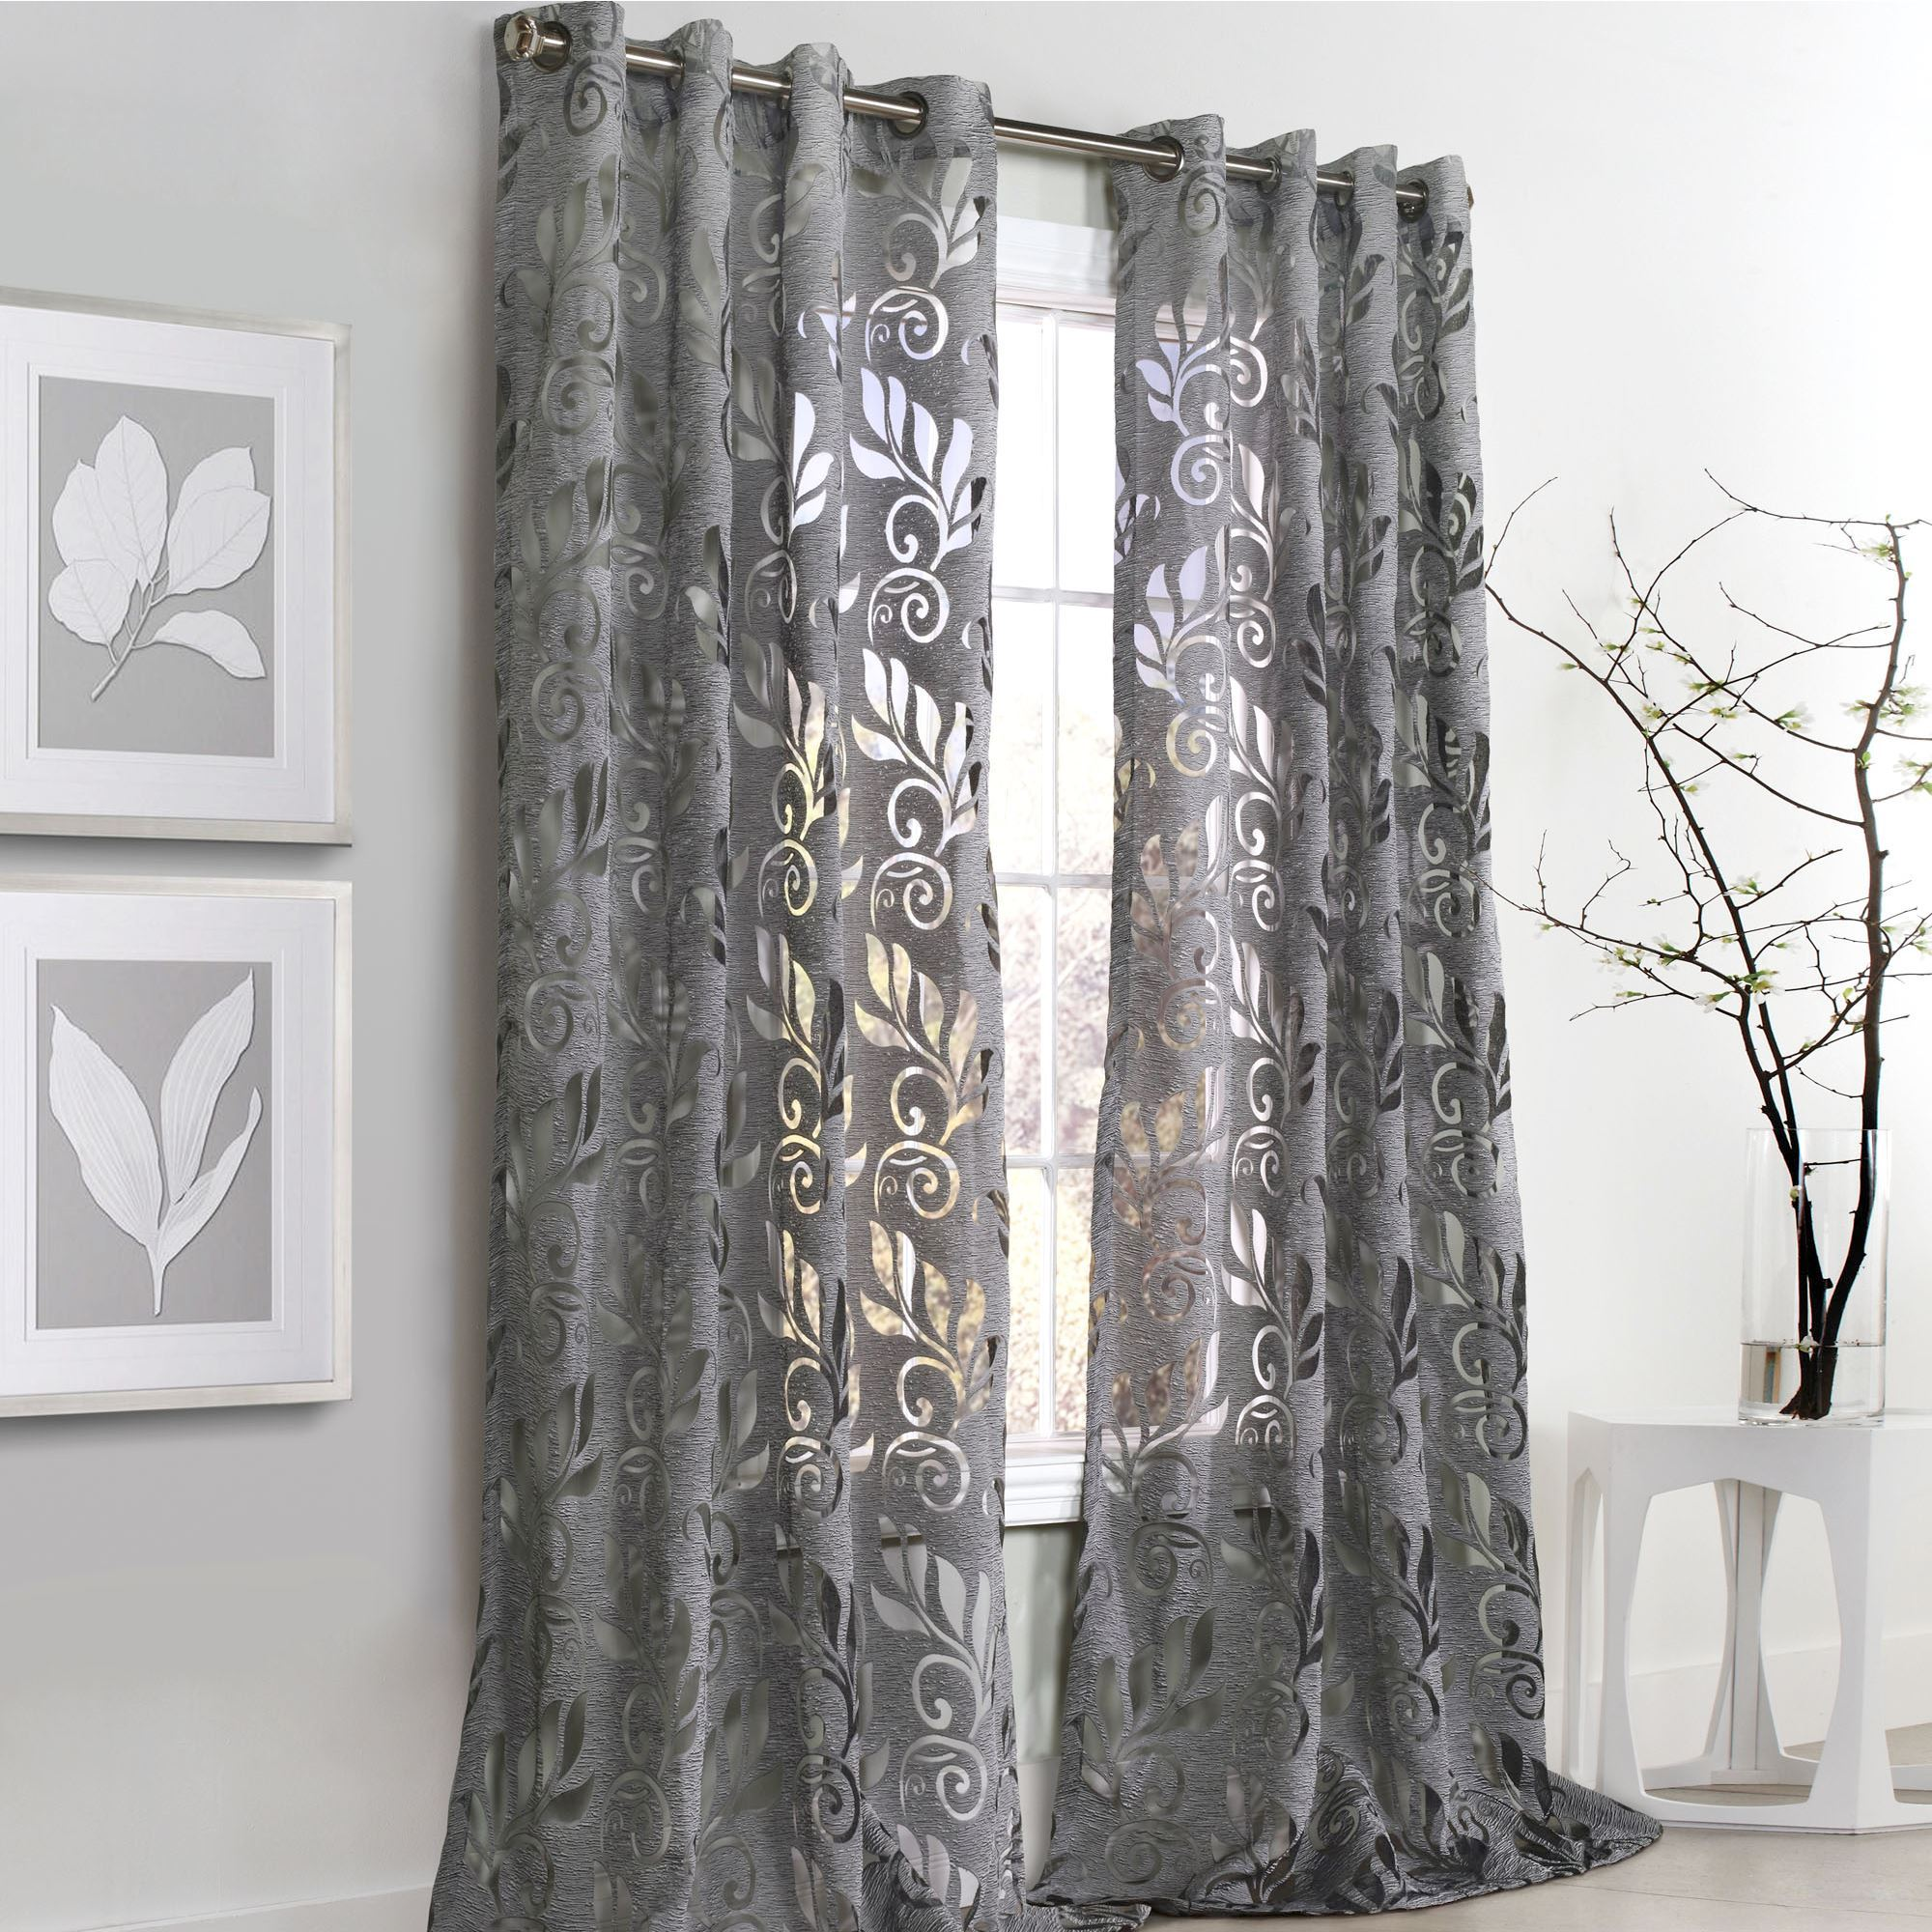 Ordinaire Amelia Grommet Curtain Panel Dark Gray. Touch To Zoom